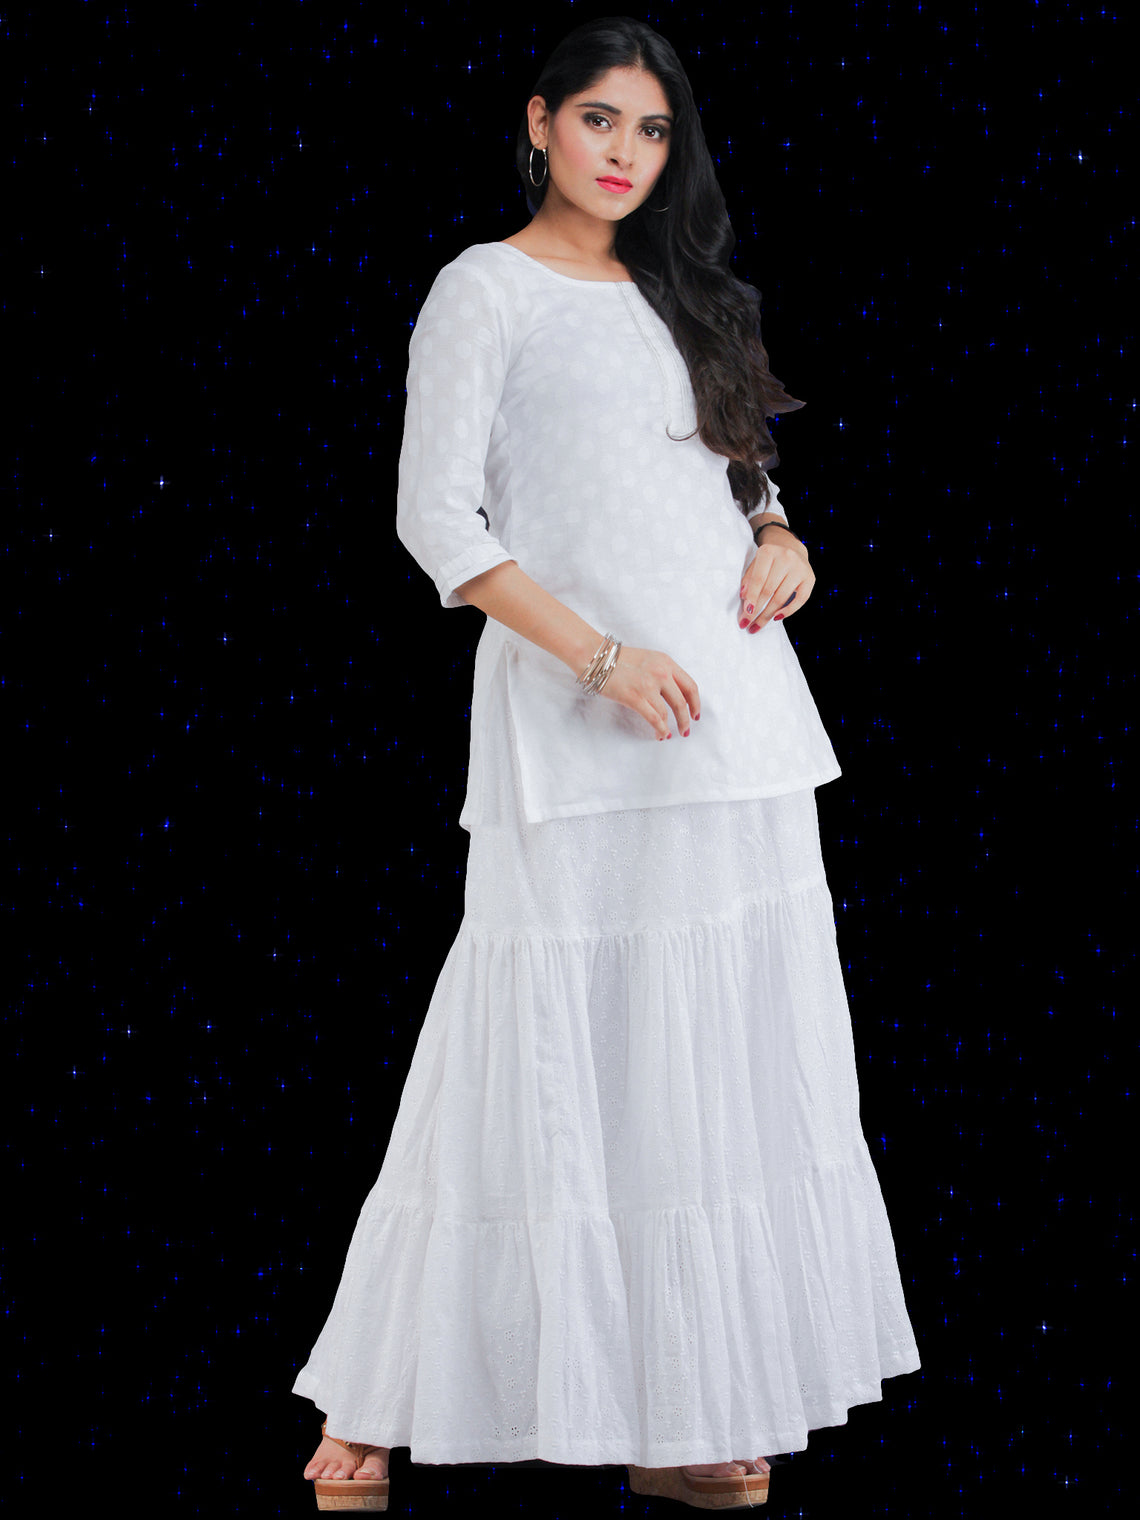 Chandni Sameera - Cotton Top Skirt Dress Set - D452FP07